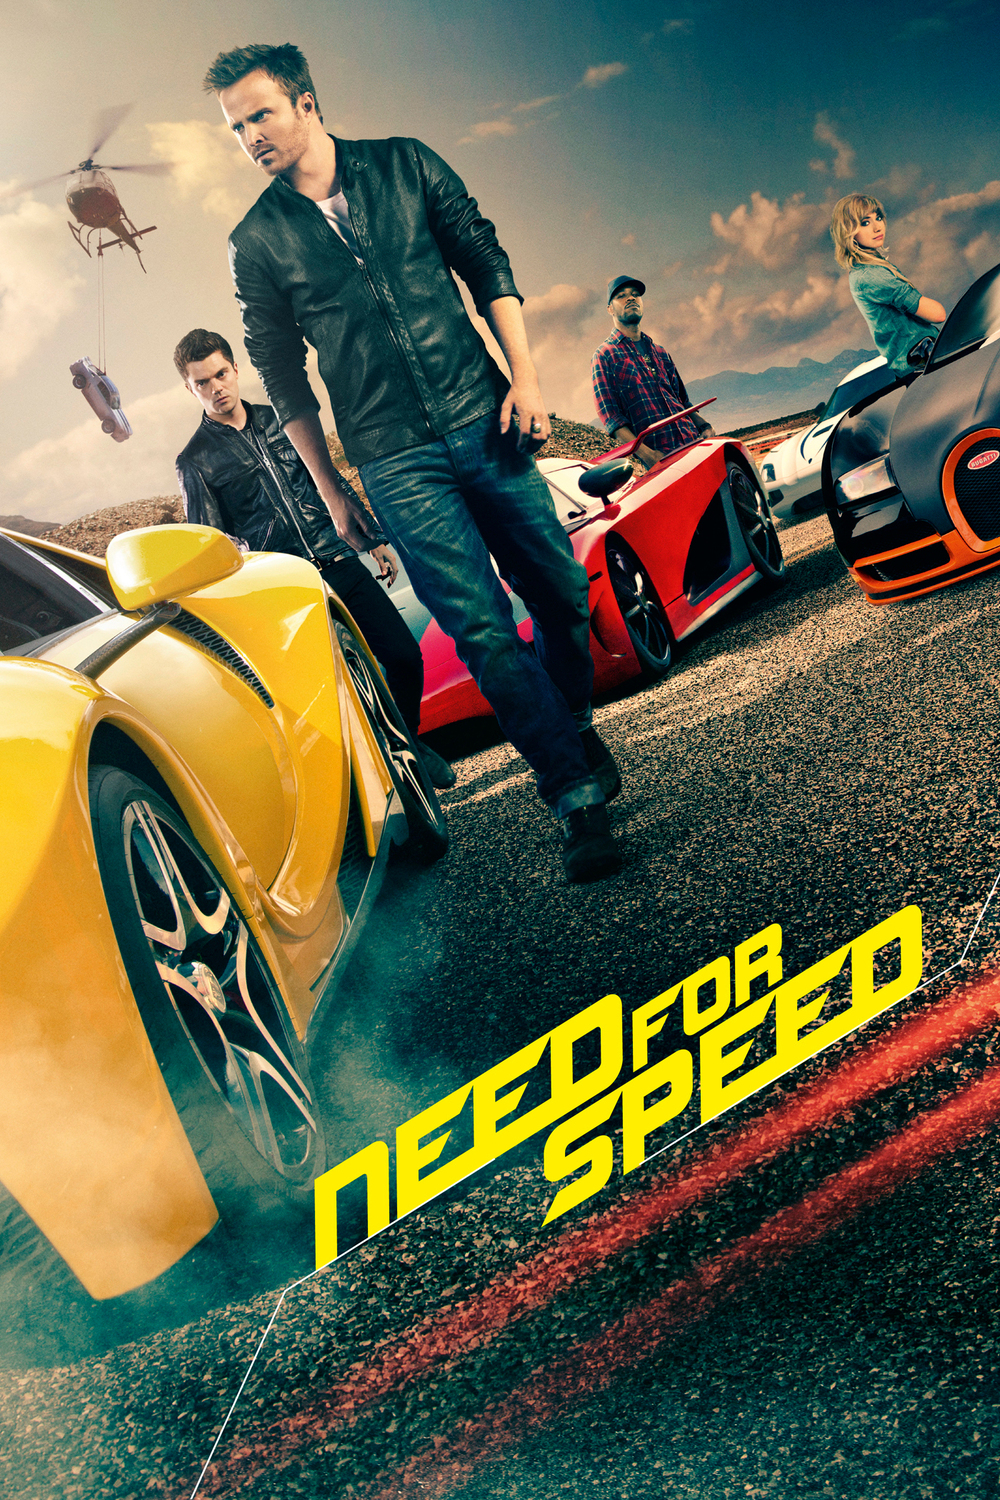 Need for speed movie review imdb